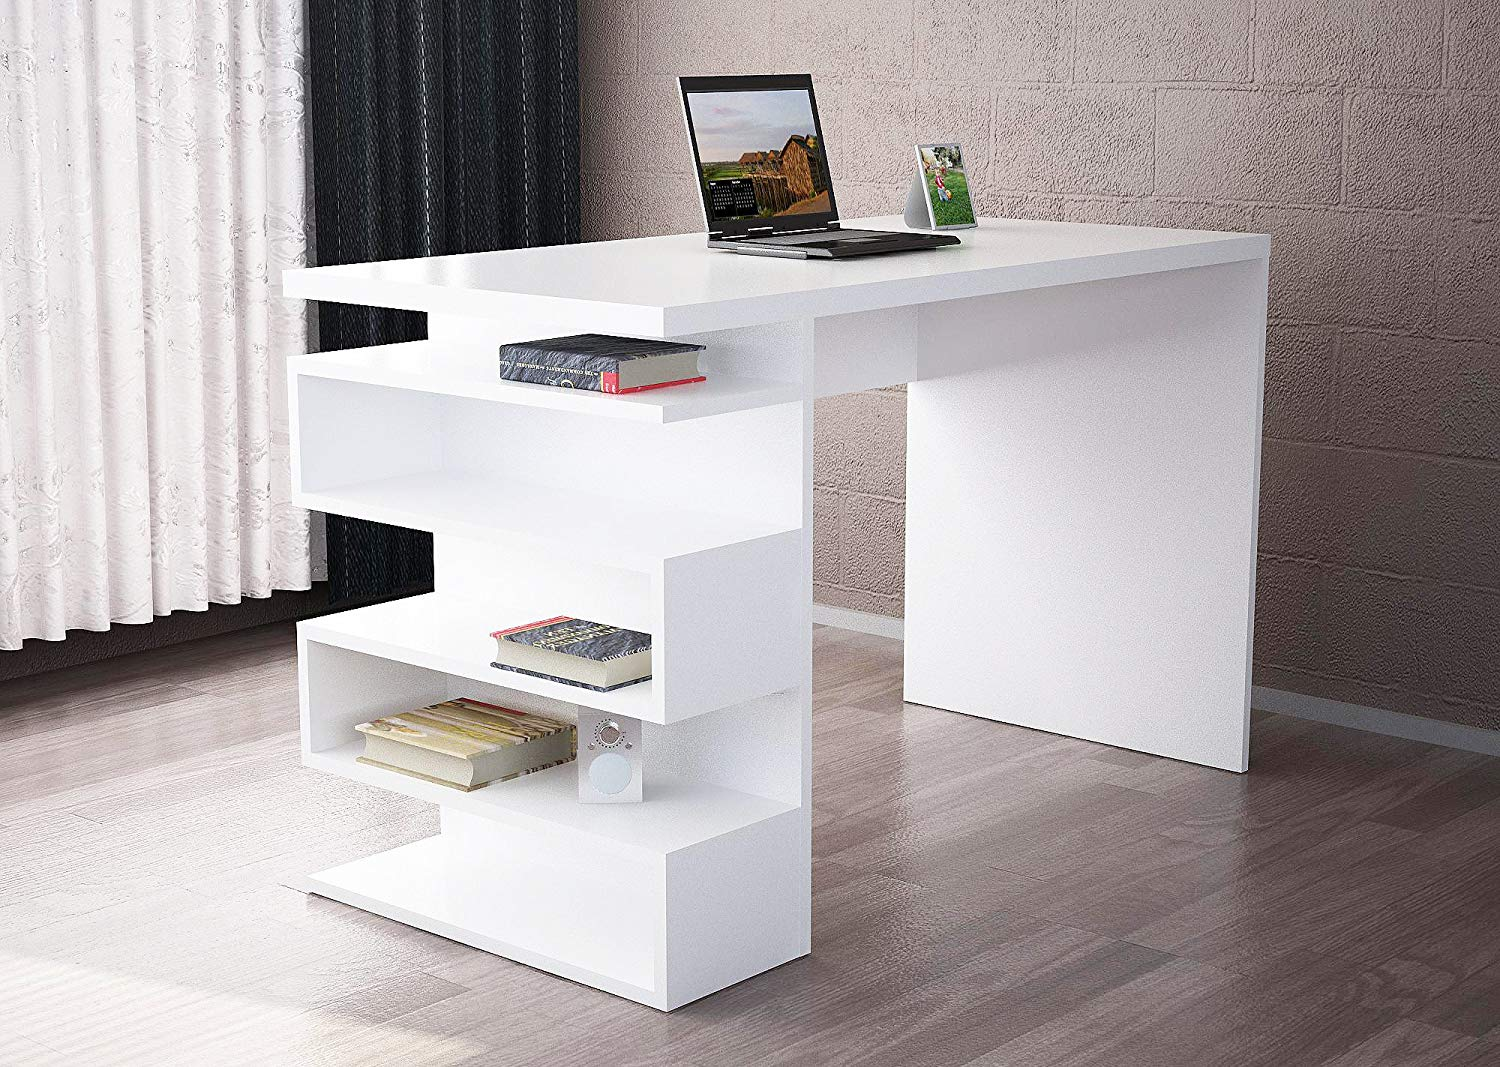 Buy Writing Computer Desk Modern Simple White One Color Simple Decorative Functional Classic Study Desk Industrial Style Study Laptop Table For Home Office Living Room Study Room In Cheap Price